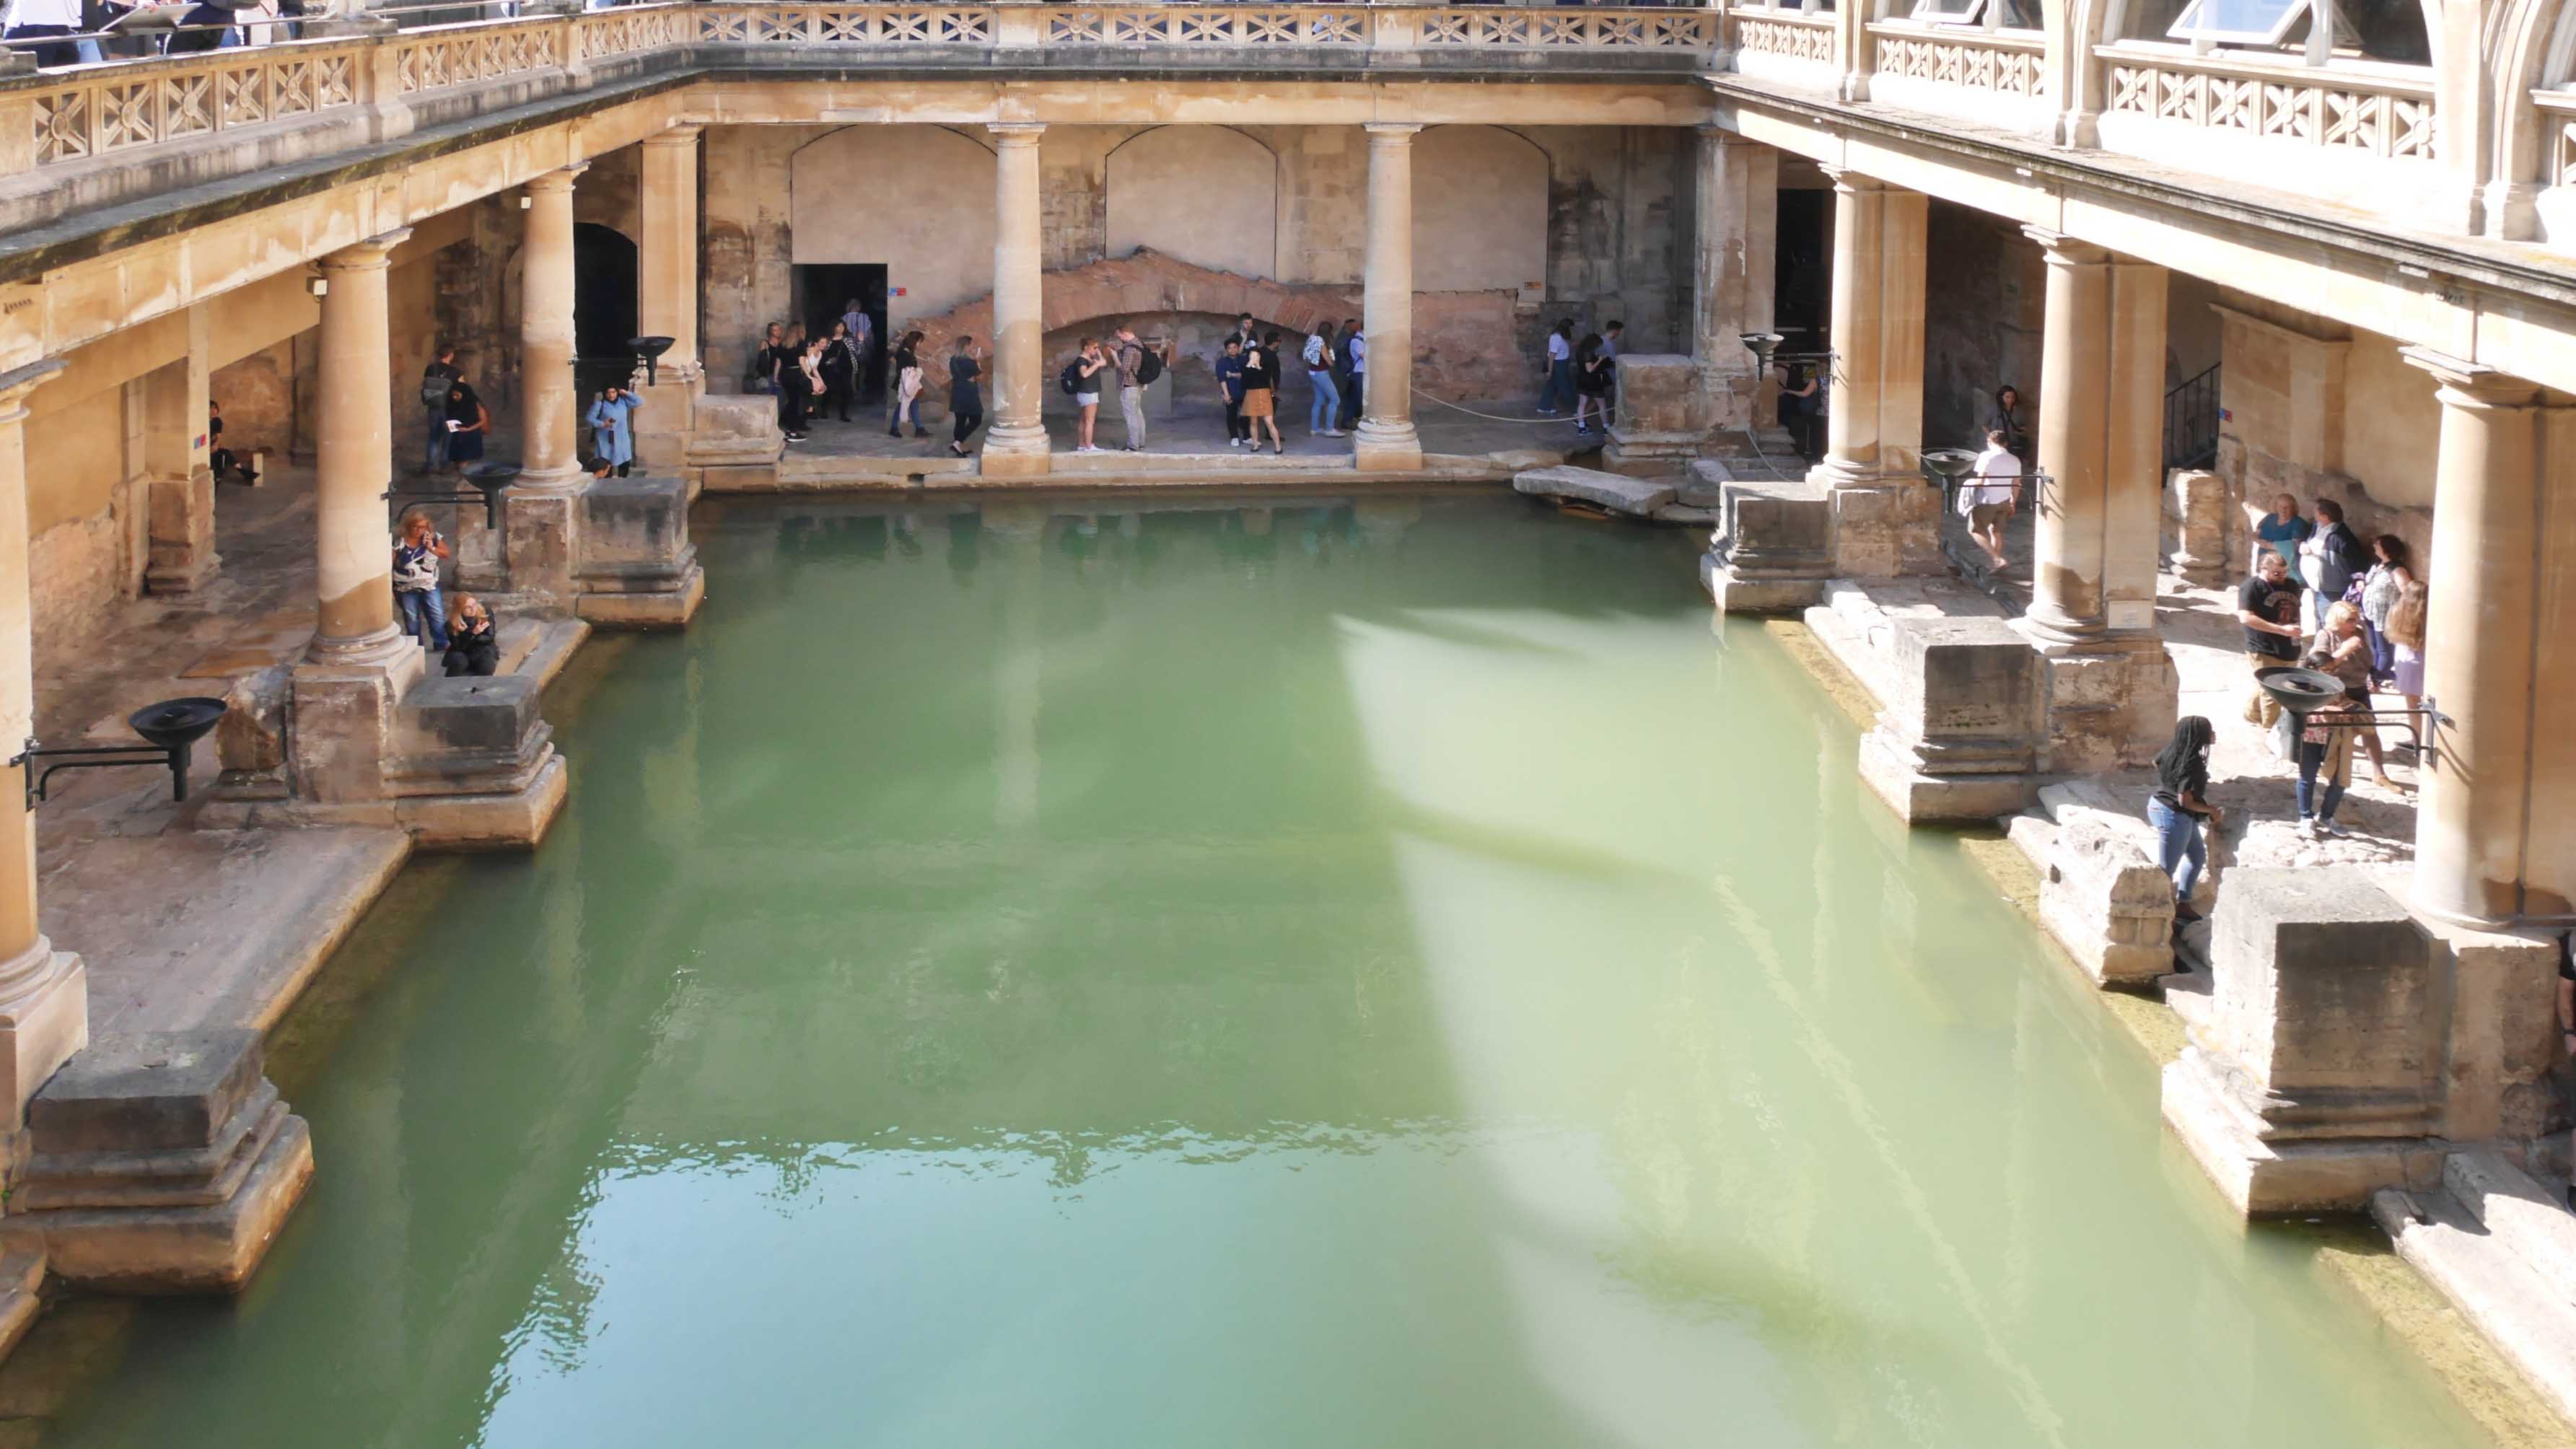 2019-09-21 Bath Roman baths1